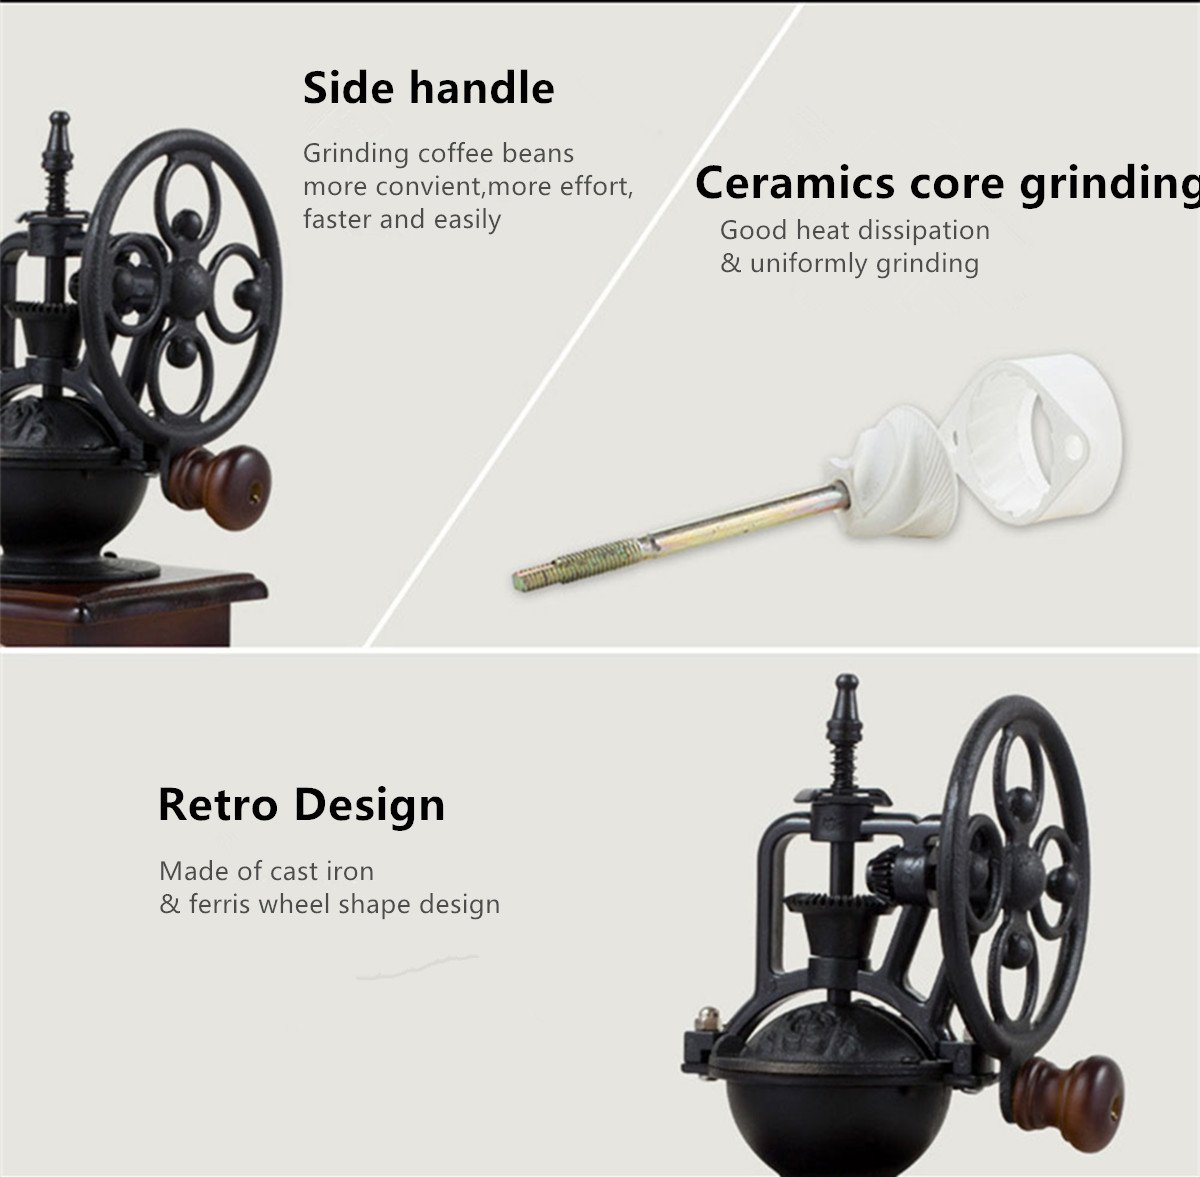 Fecihor Manual Coffee Grinder With Grind Settings and Catch Drawer - Classic Vintage Style Manual Hand Grinder Coffee Mill by Fecihor (Image #5)